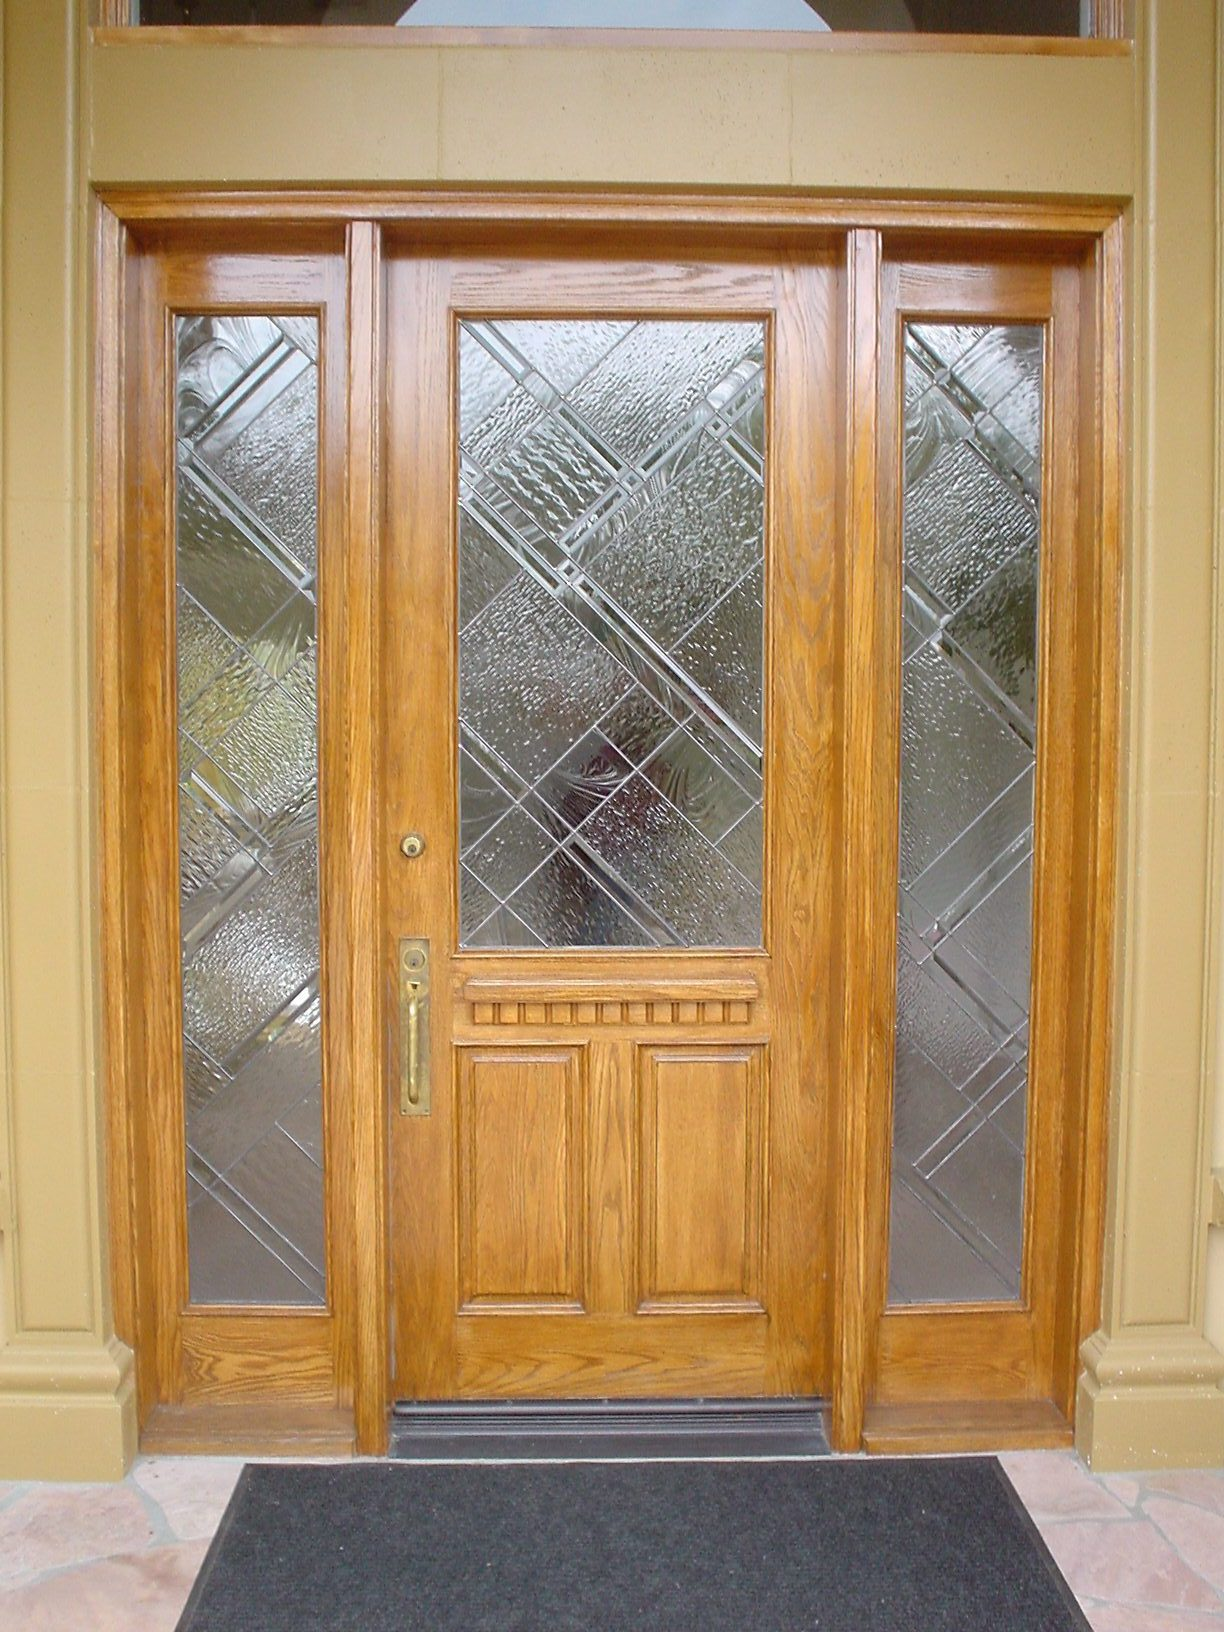 1632 #6F4320 Abstract Entry Door & Sidelites Architectural Stained Glass image Exterior Doors With Sidelites 40931224